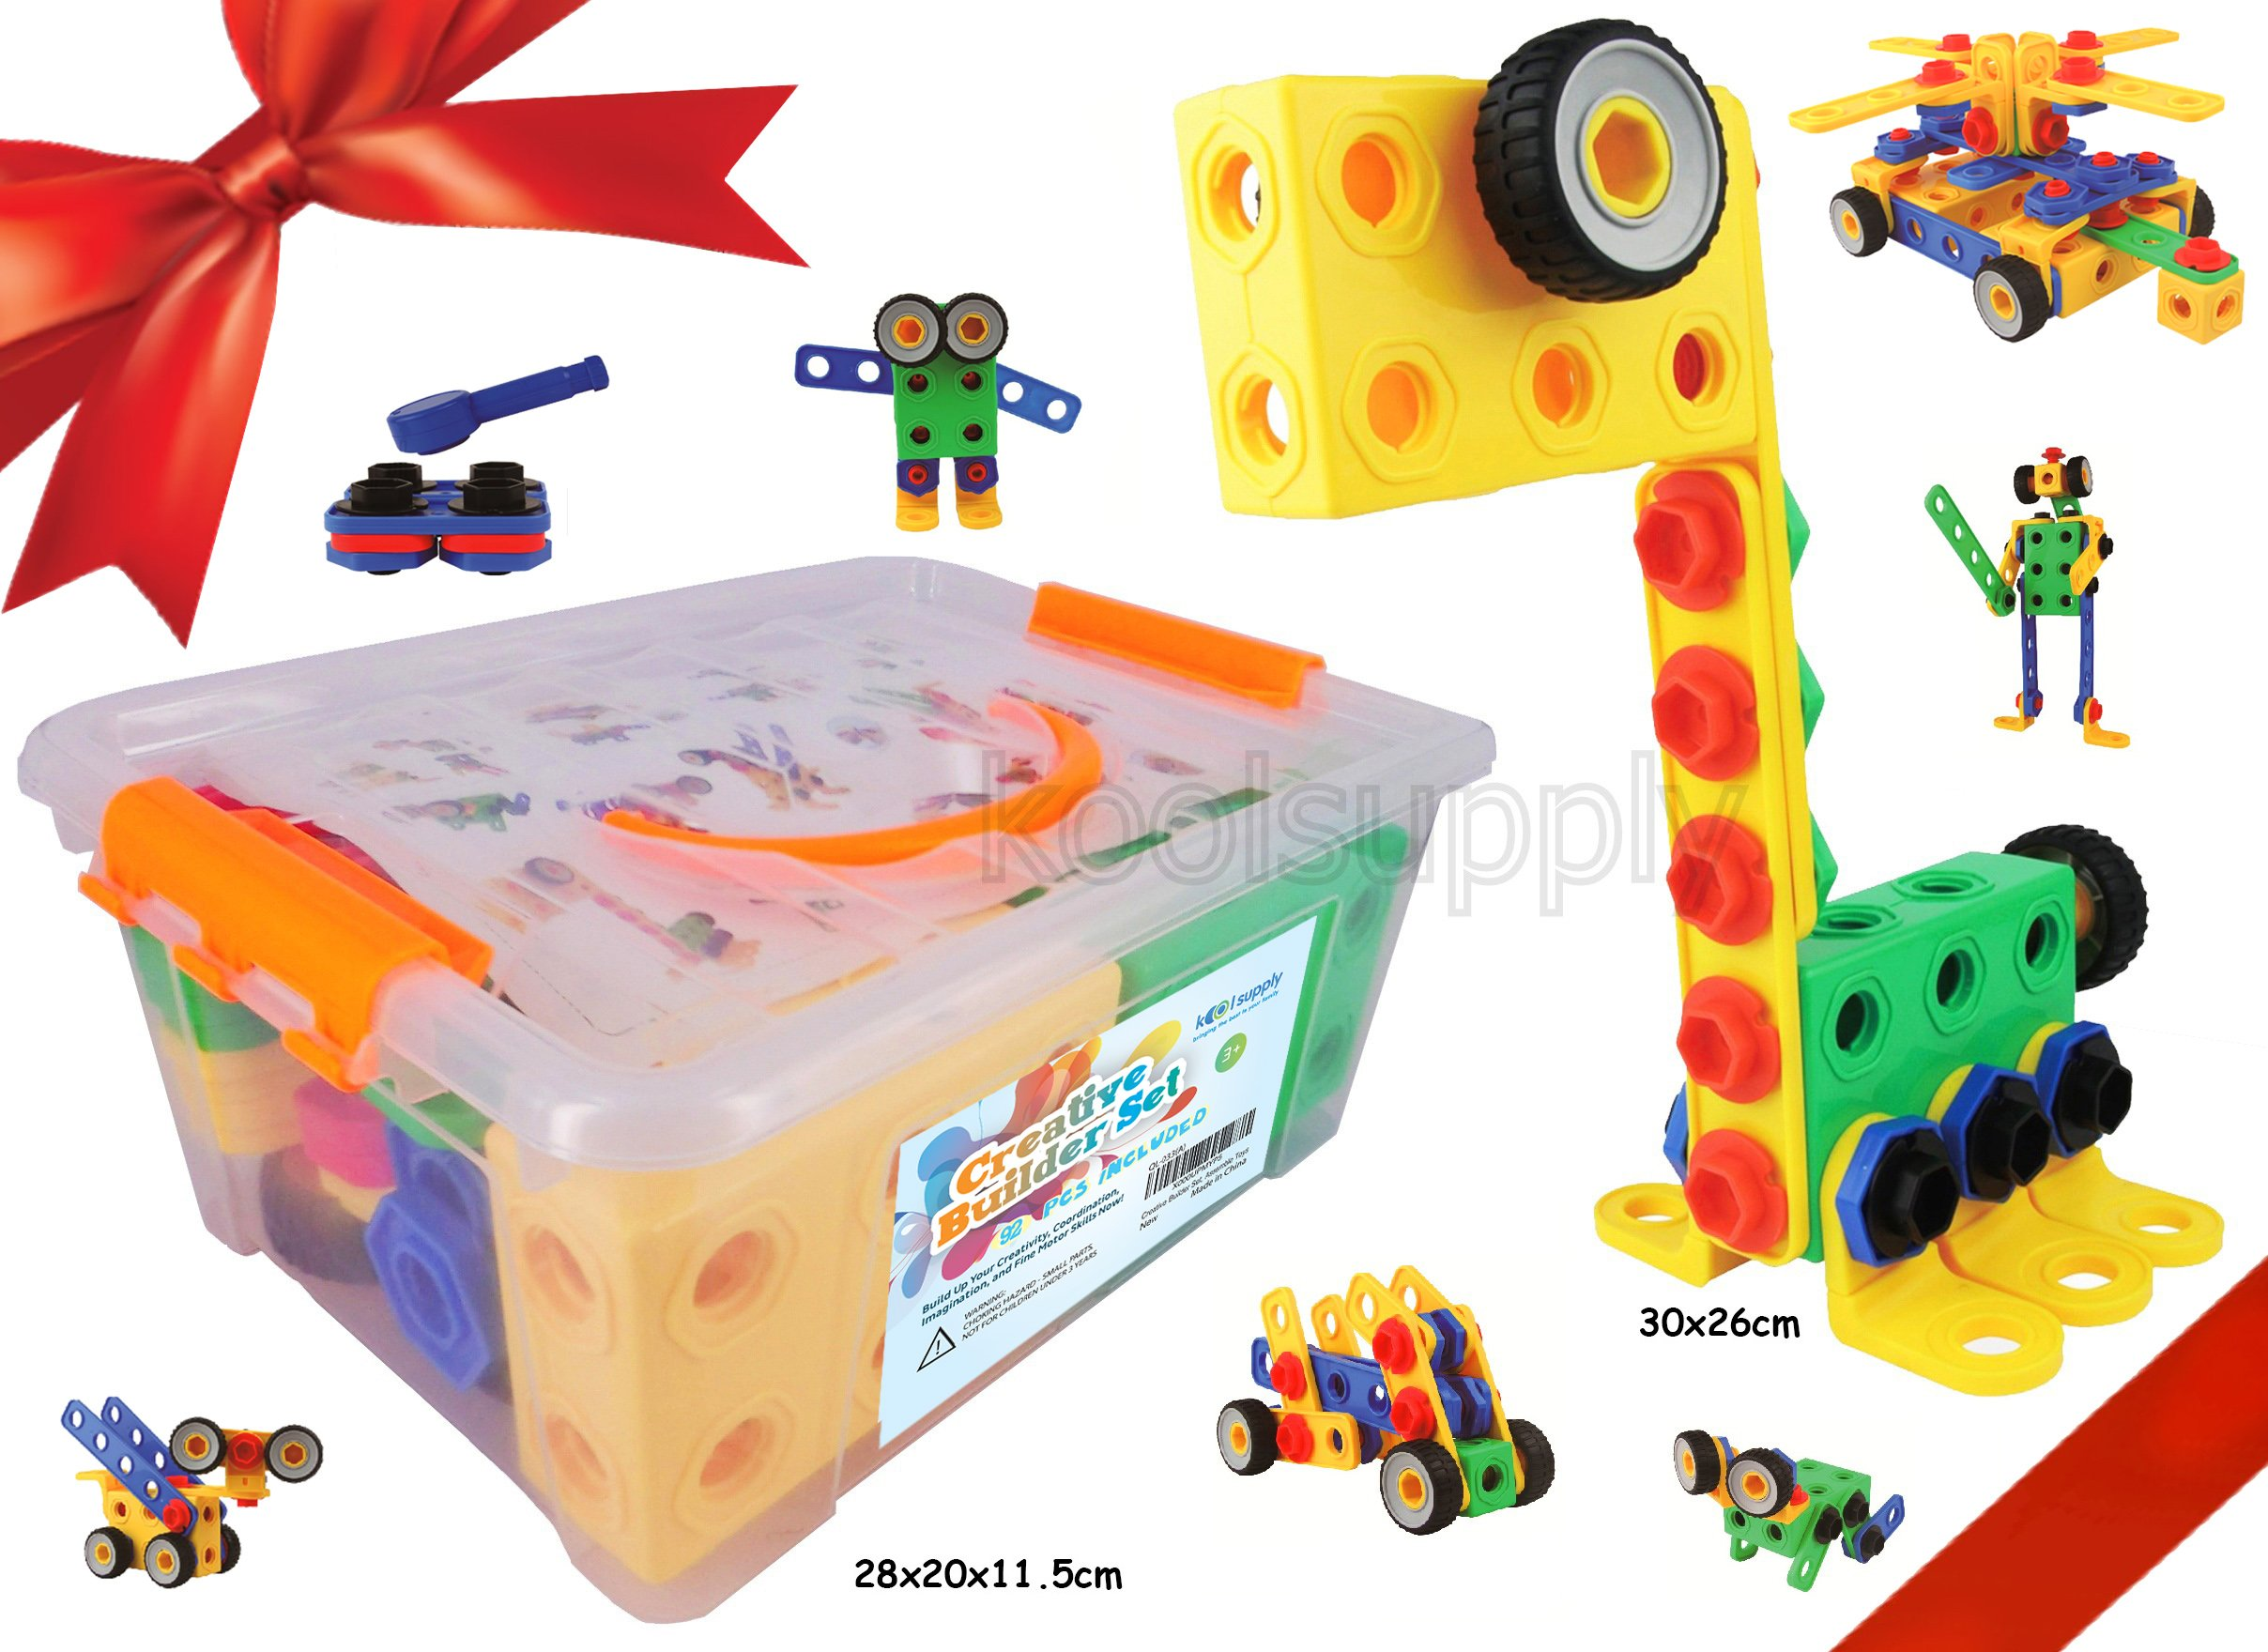 Creativity Toys For Boys : Creative builder set original pieces stem building